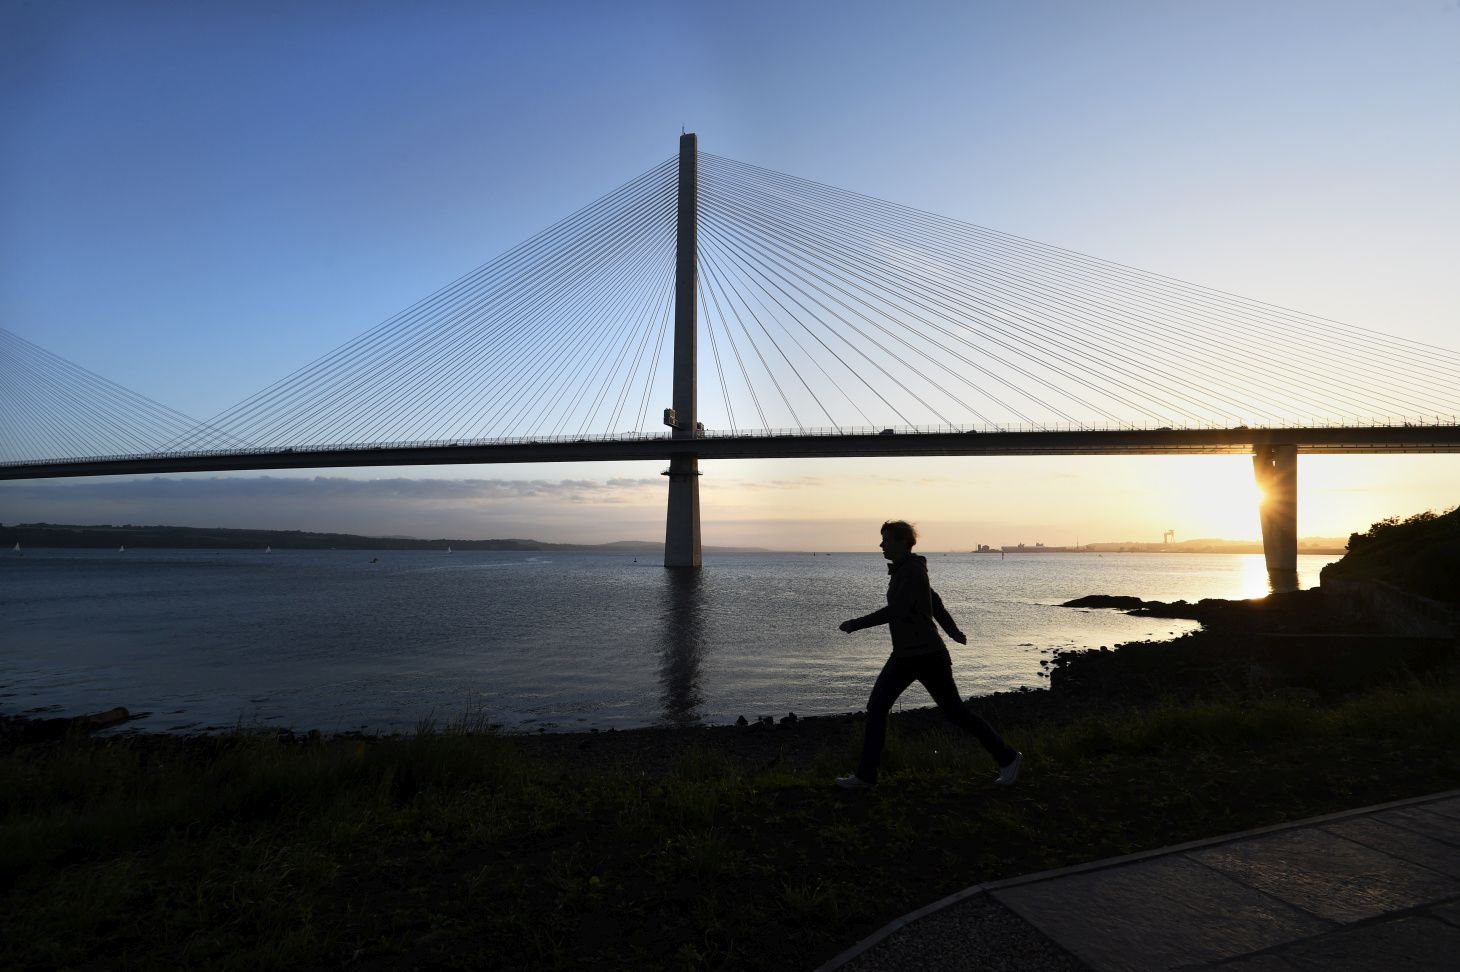 Person walking past the Queensferry crossing